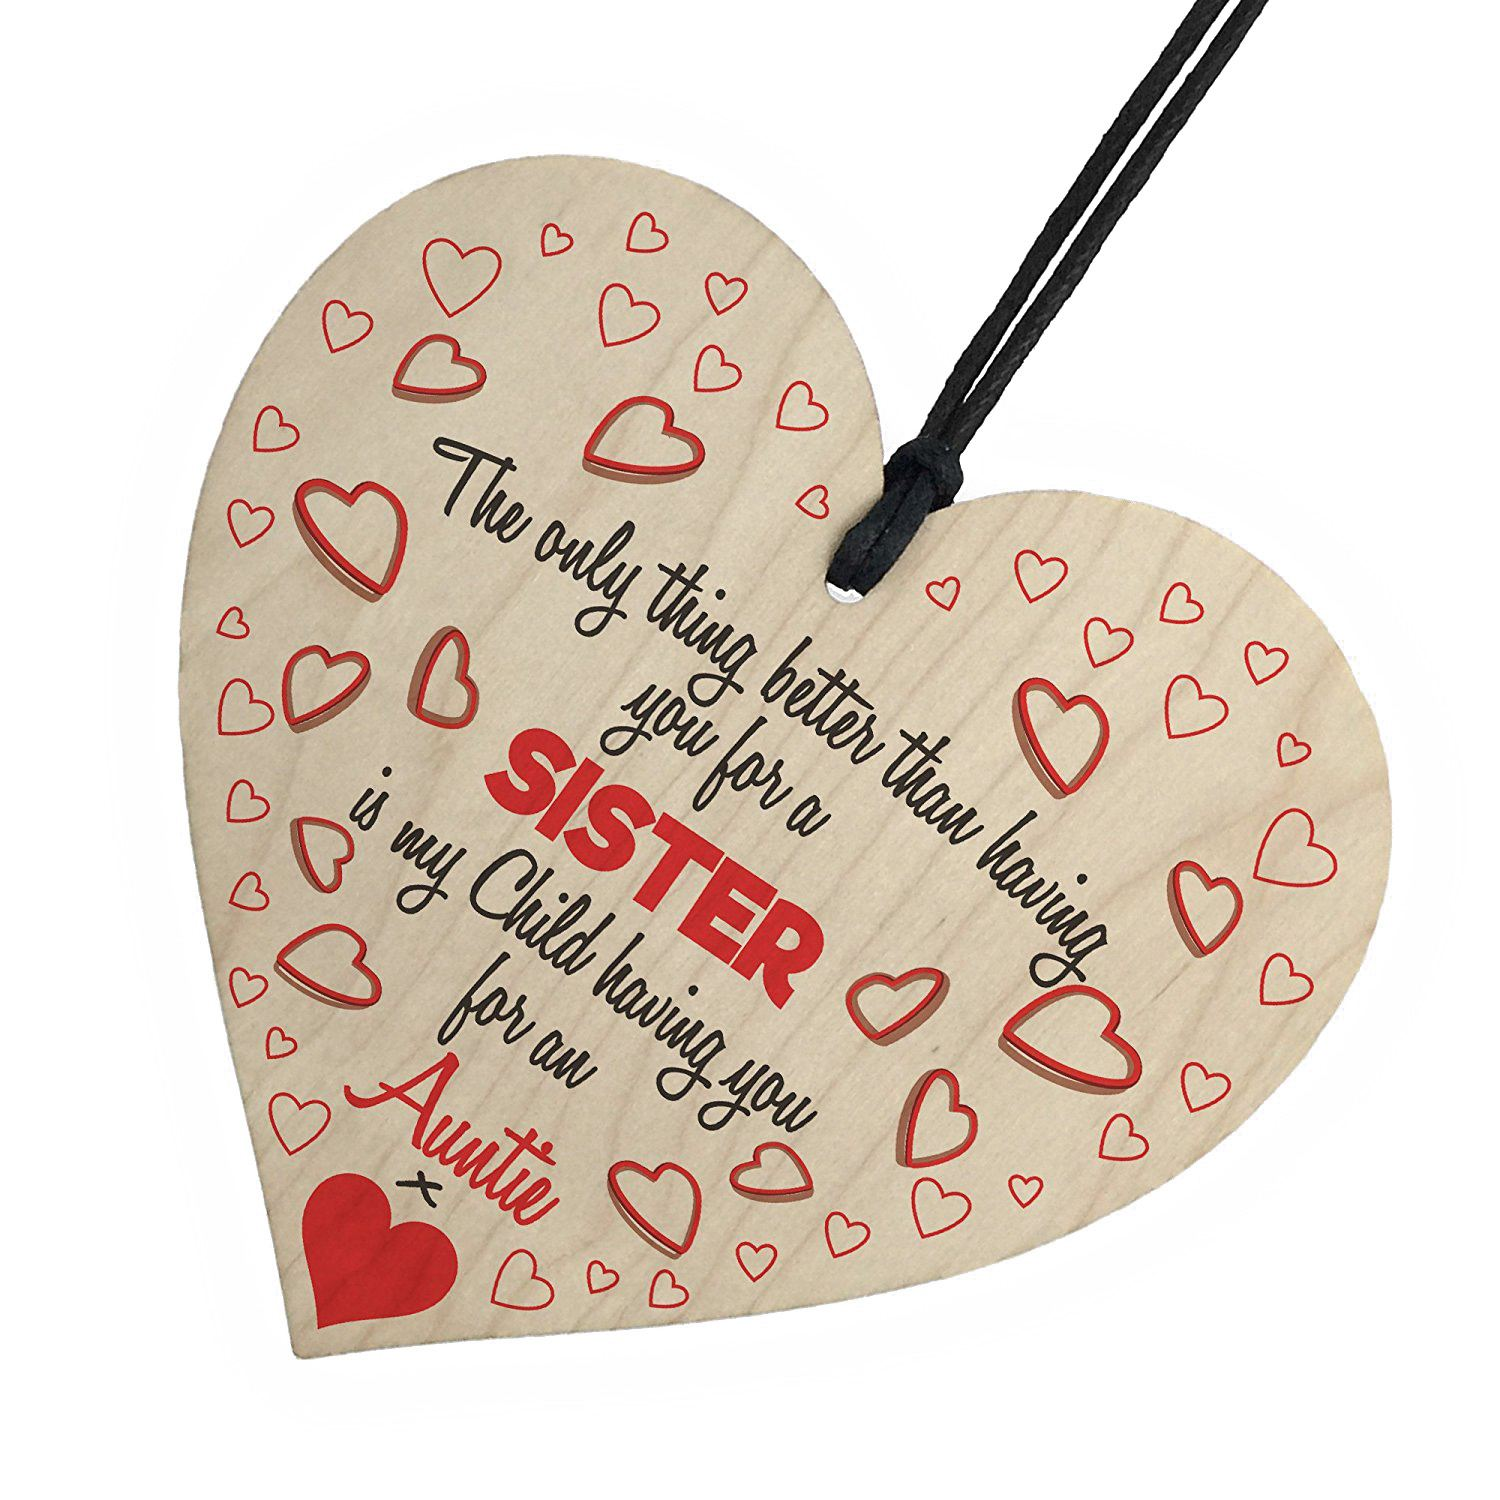 HOT SALE My Children Having You As An Auntie Wooden Hanging Heart Cute Love Aunt Plaque